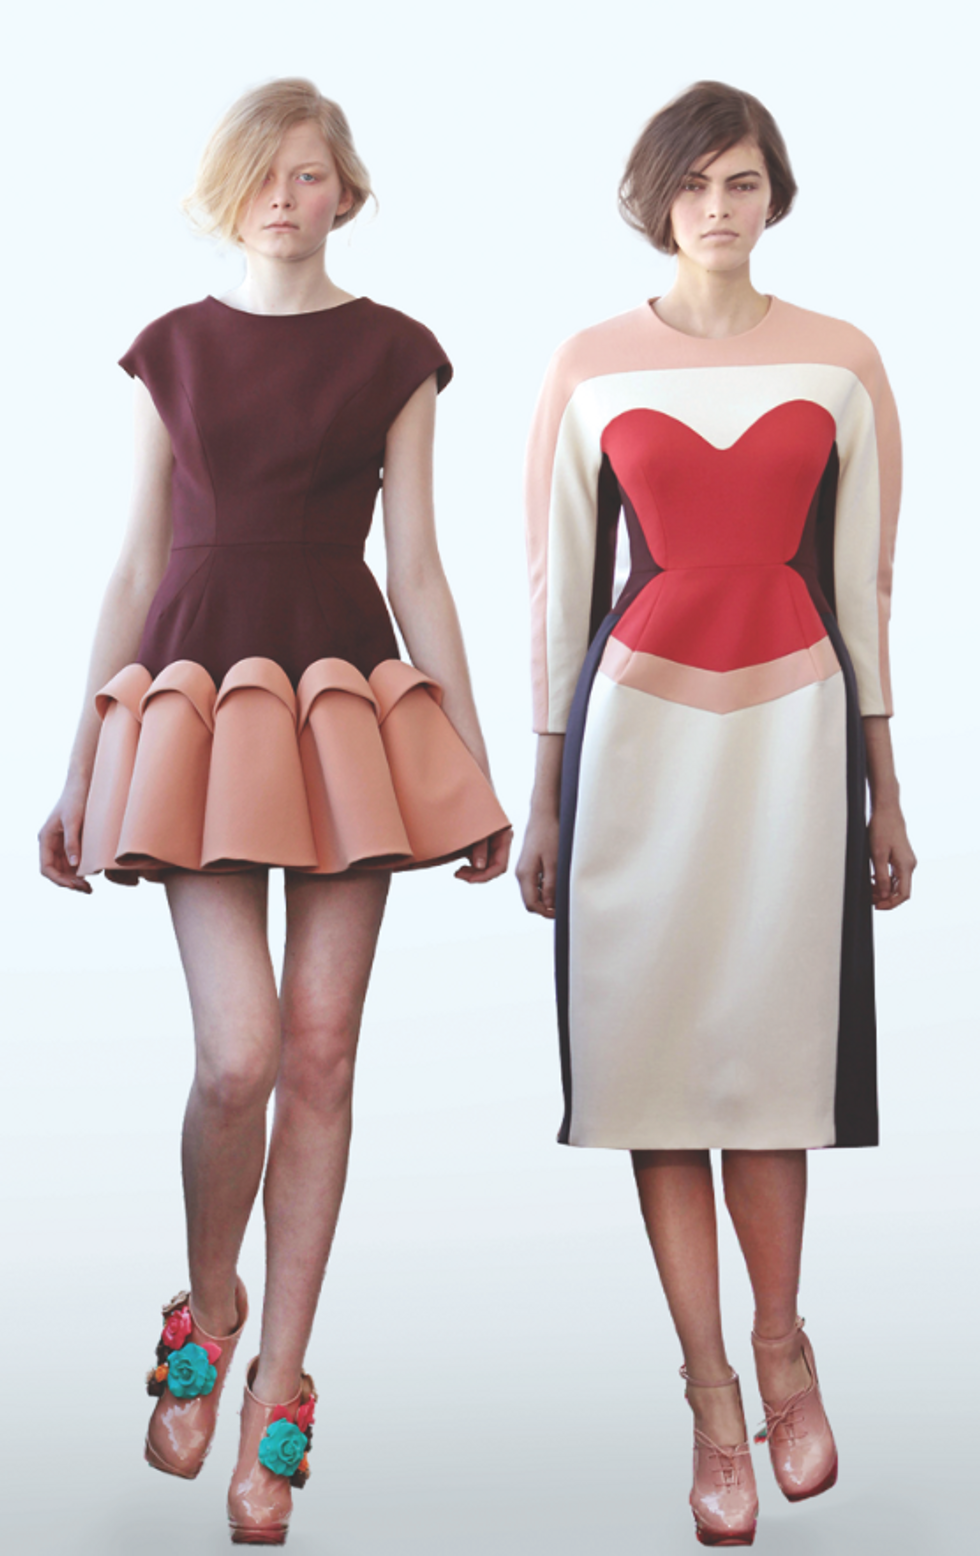 Not Since Balenciaga Has a Spanish Label Generated As Much Buzz as Delpozo